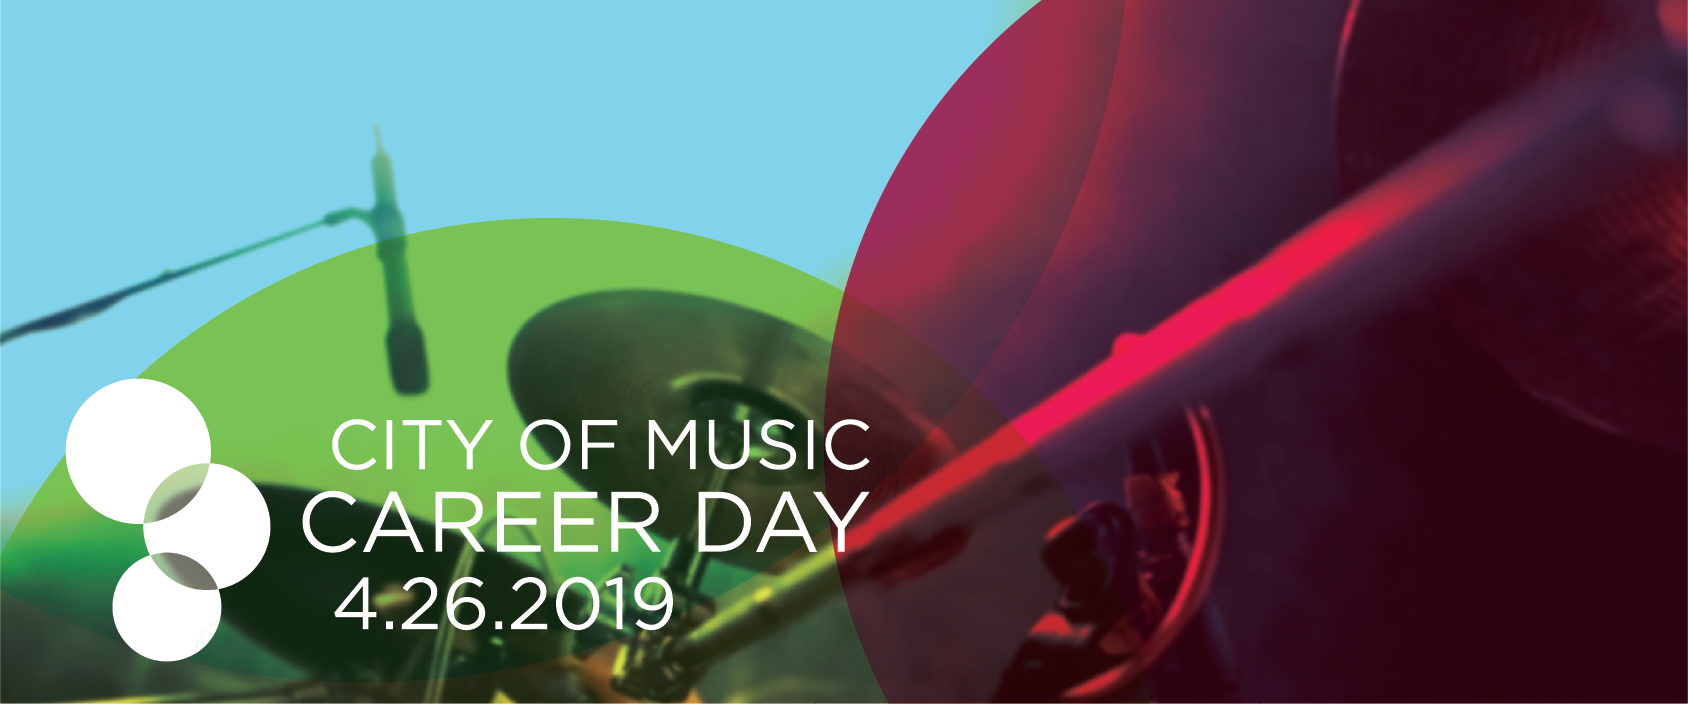 music_careerday_2019-01.png